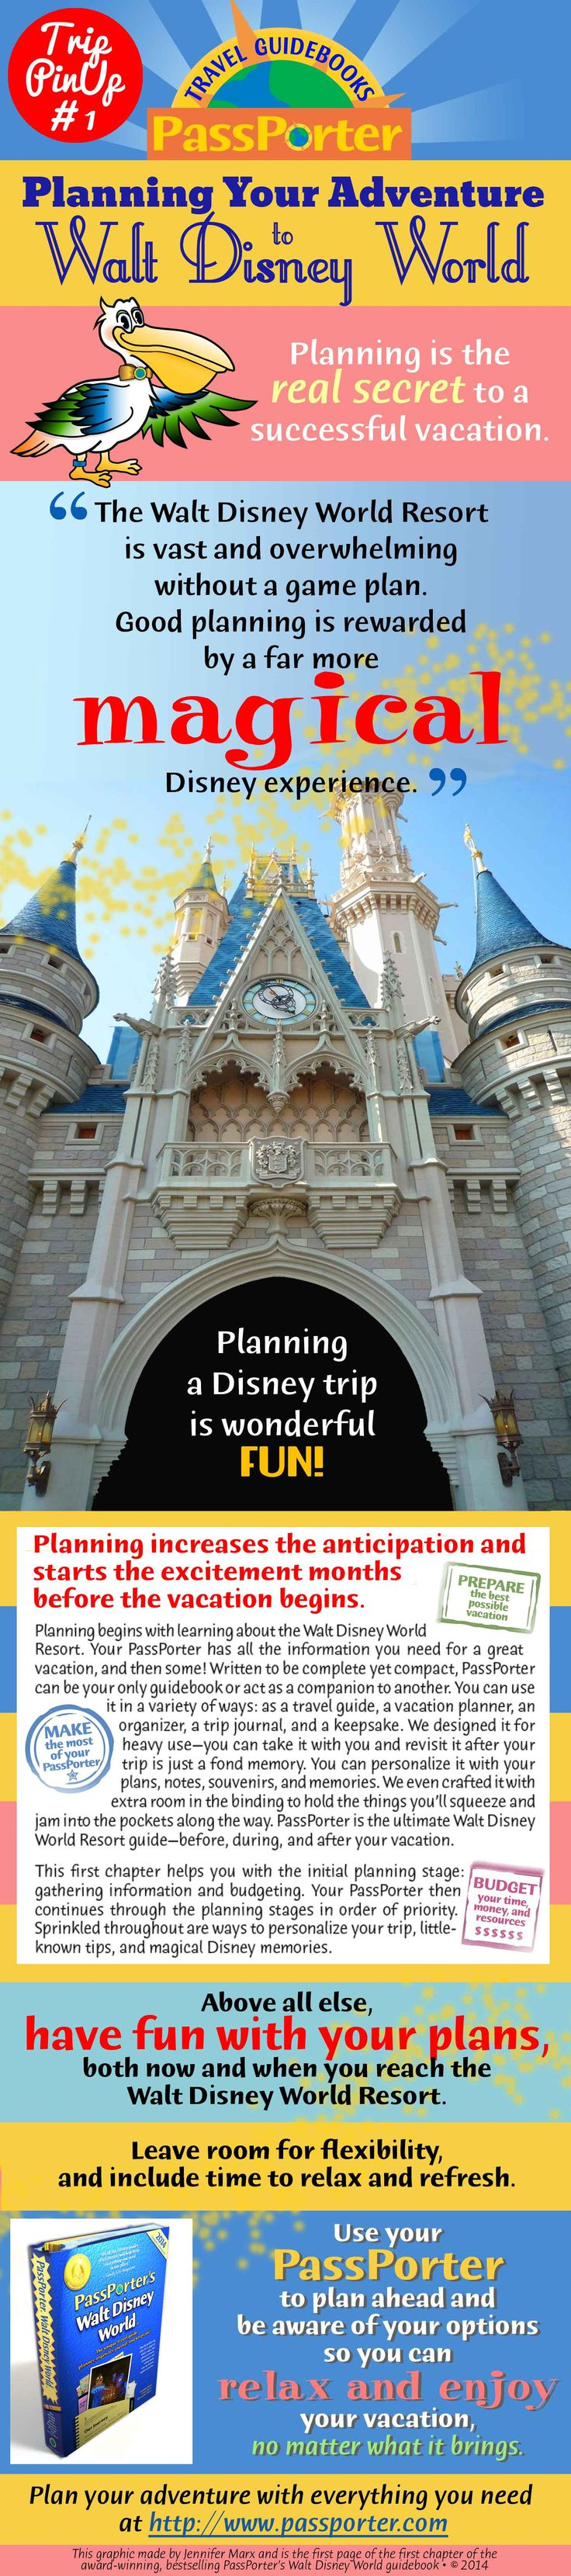 """""""Planning is the secret to a successful vacation."""" From page 1 of chapter 1 of the award-winning PassPorter's Walt Disney World guidebook. Love!"""